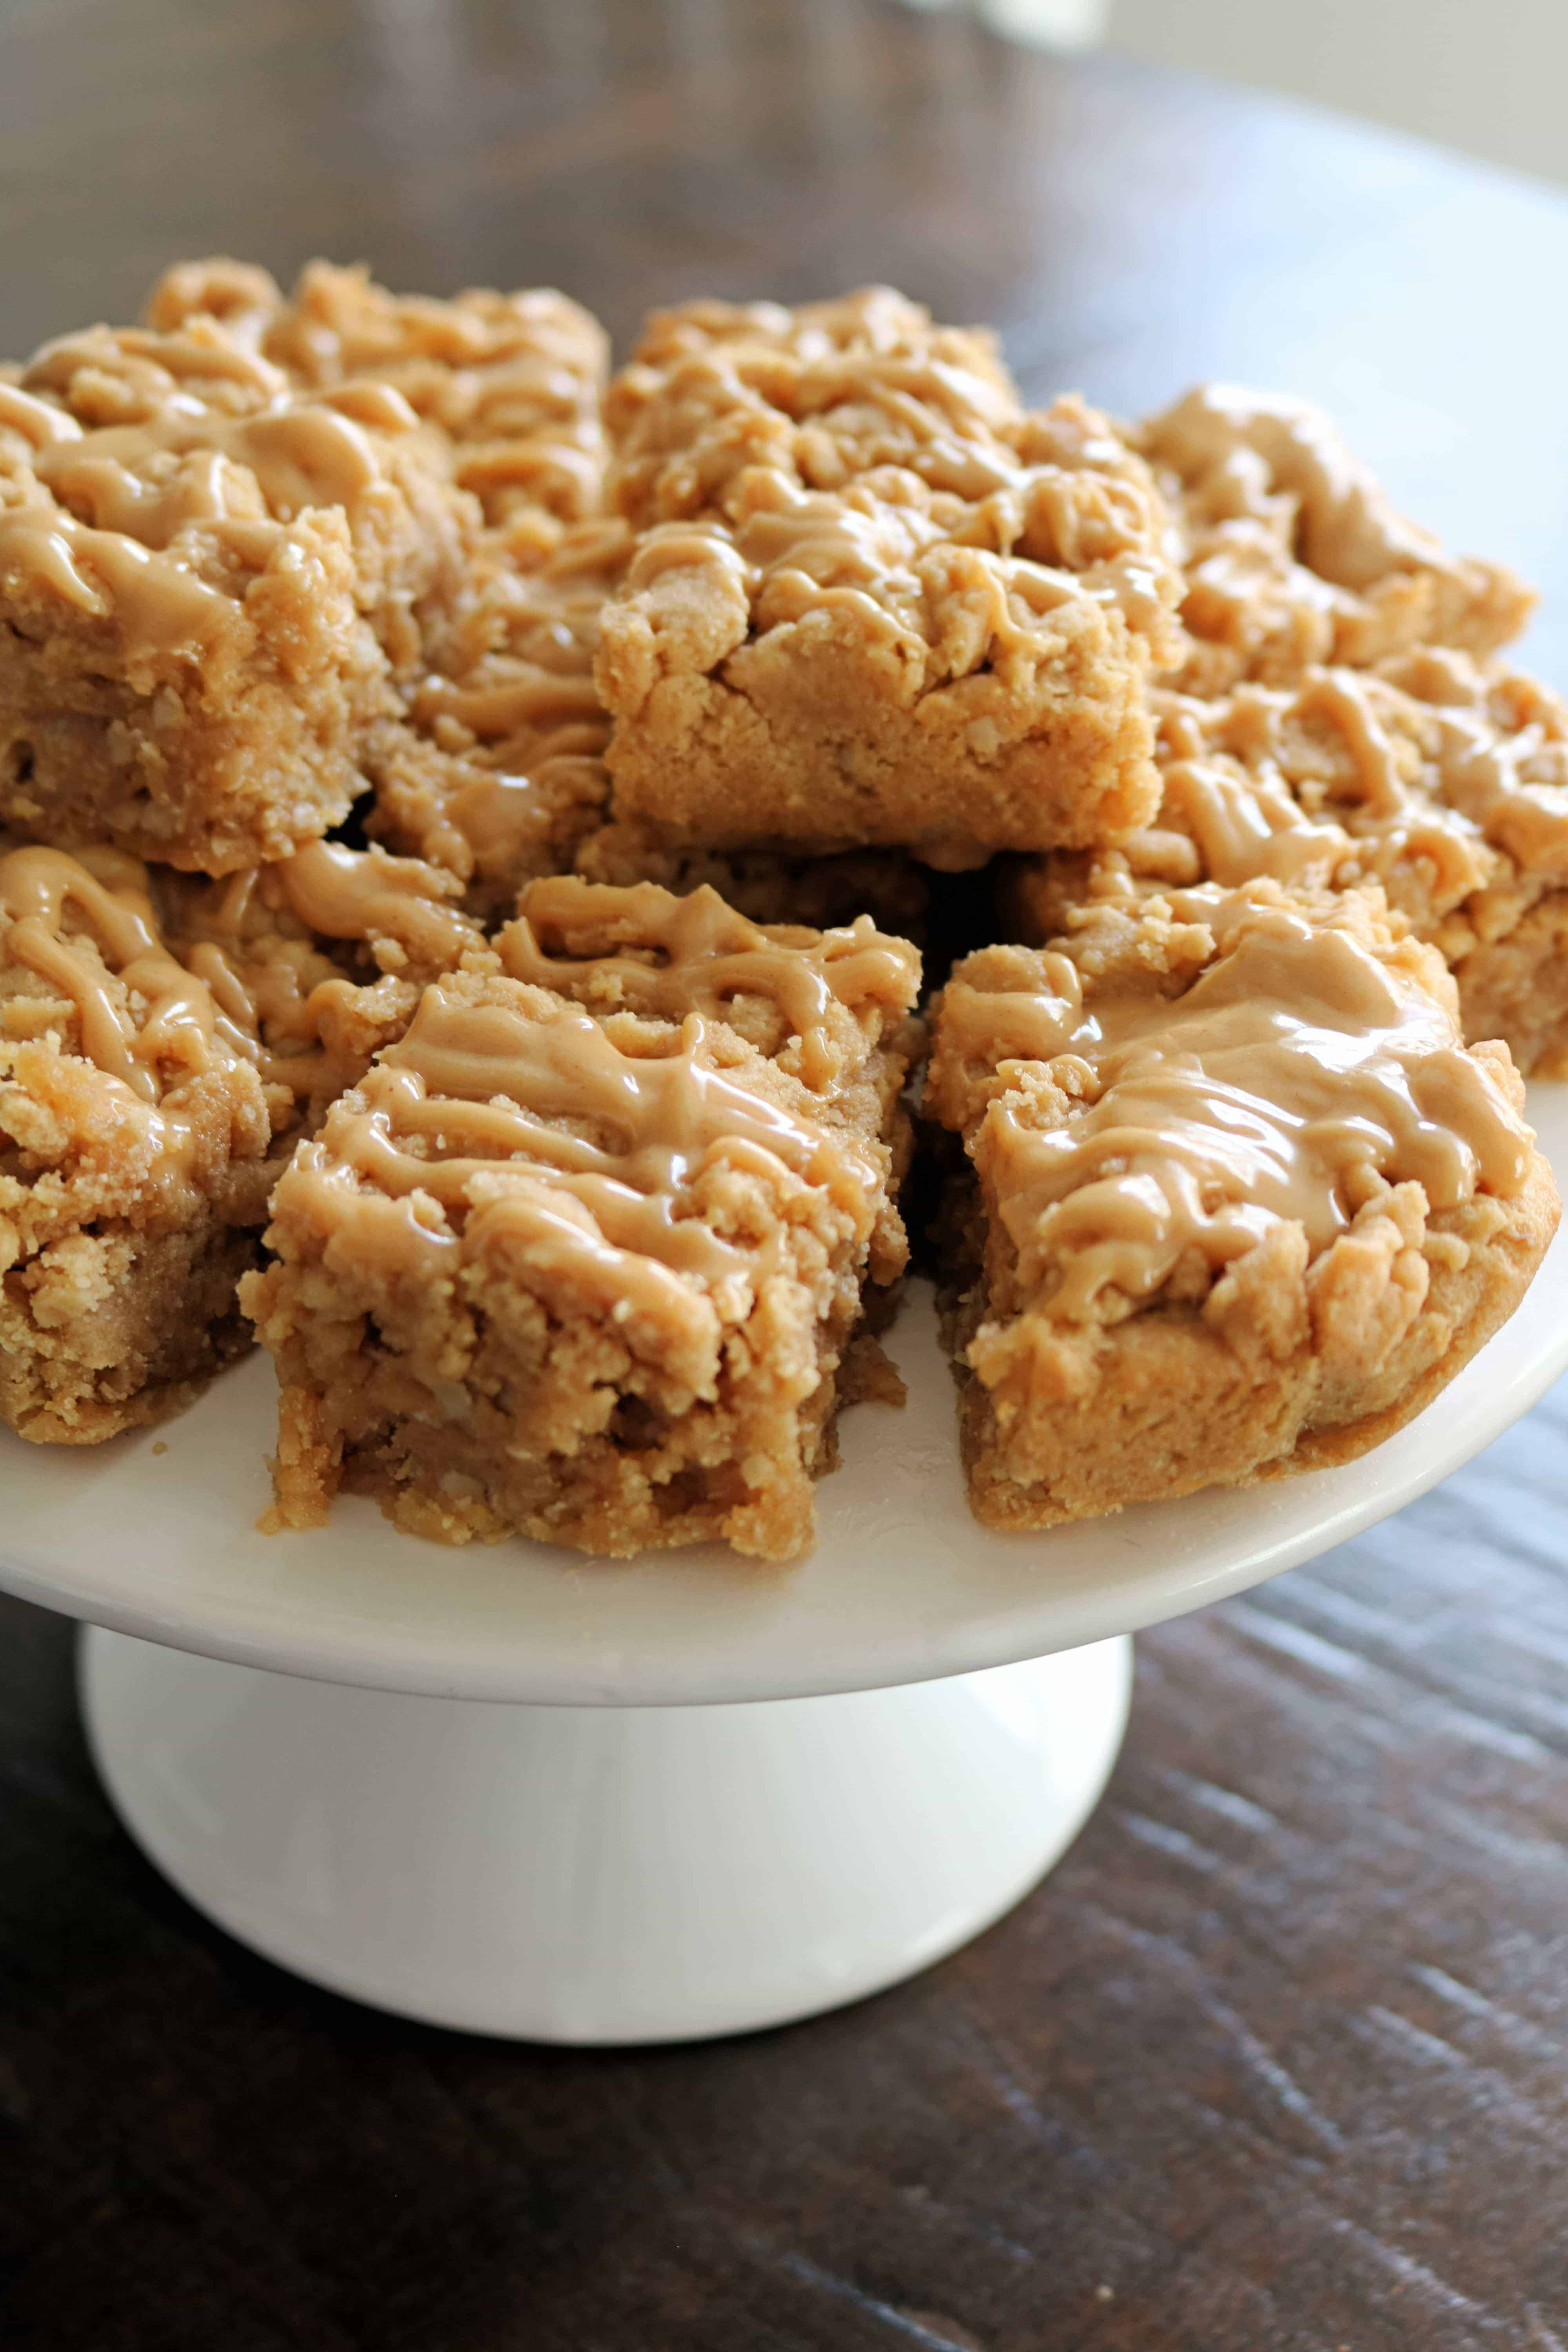 #ad These Triple Peanut Butter Oatmeal Bars are thick, soft, delicious, and full of an irresistible peanut butter flavor you can't resist! Even better these peanut butter bars use only simple ingredients and bake in less than 30 minutes! #HowDoYouPB #dessert #peanutbutterbars